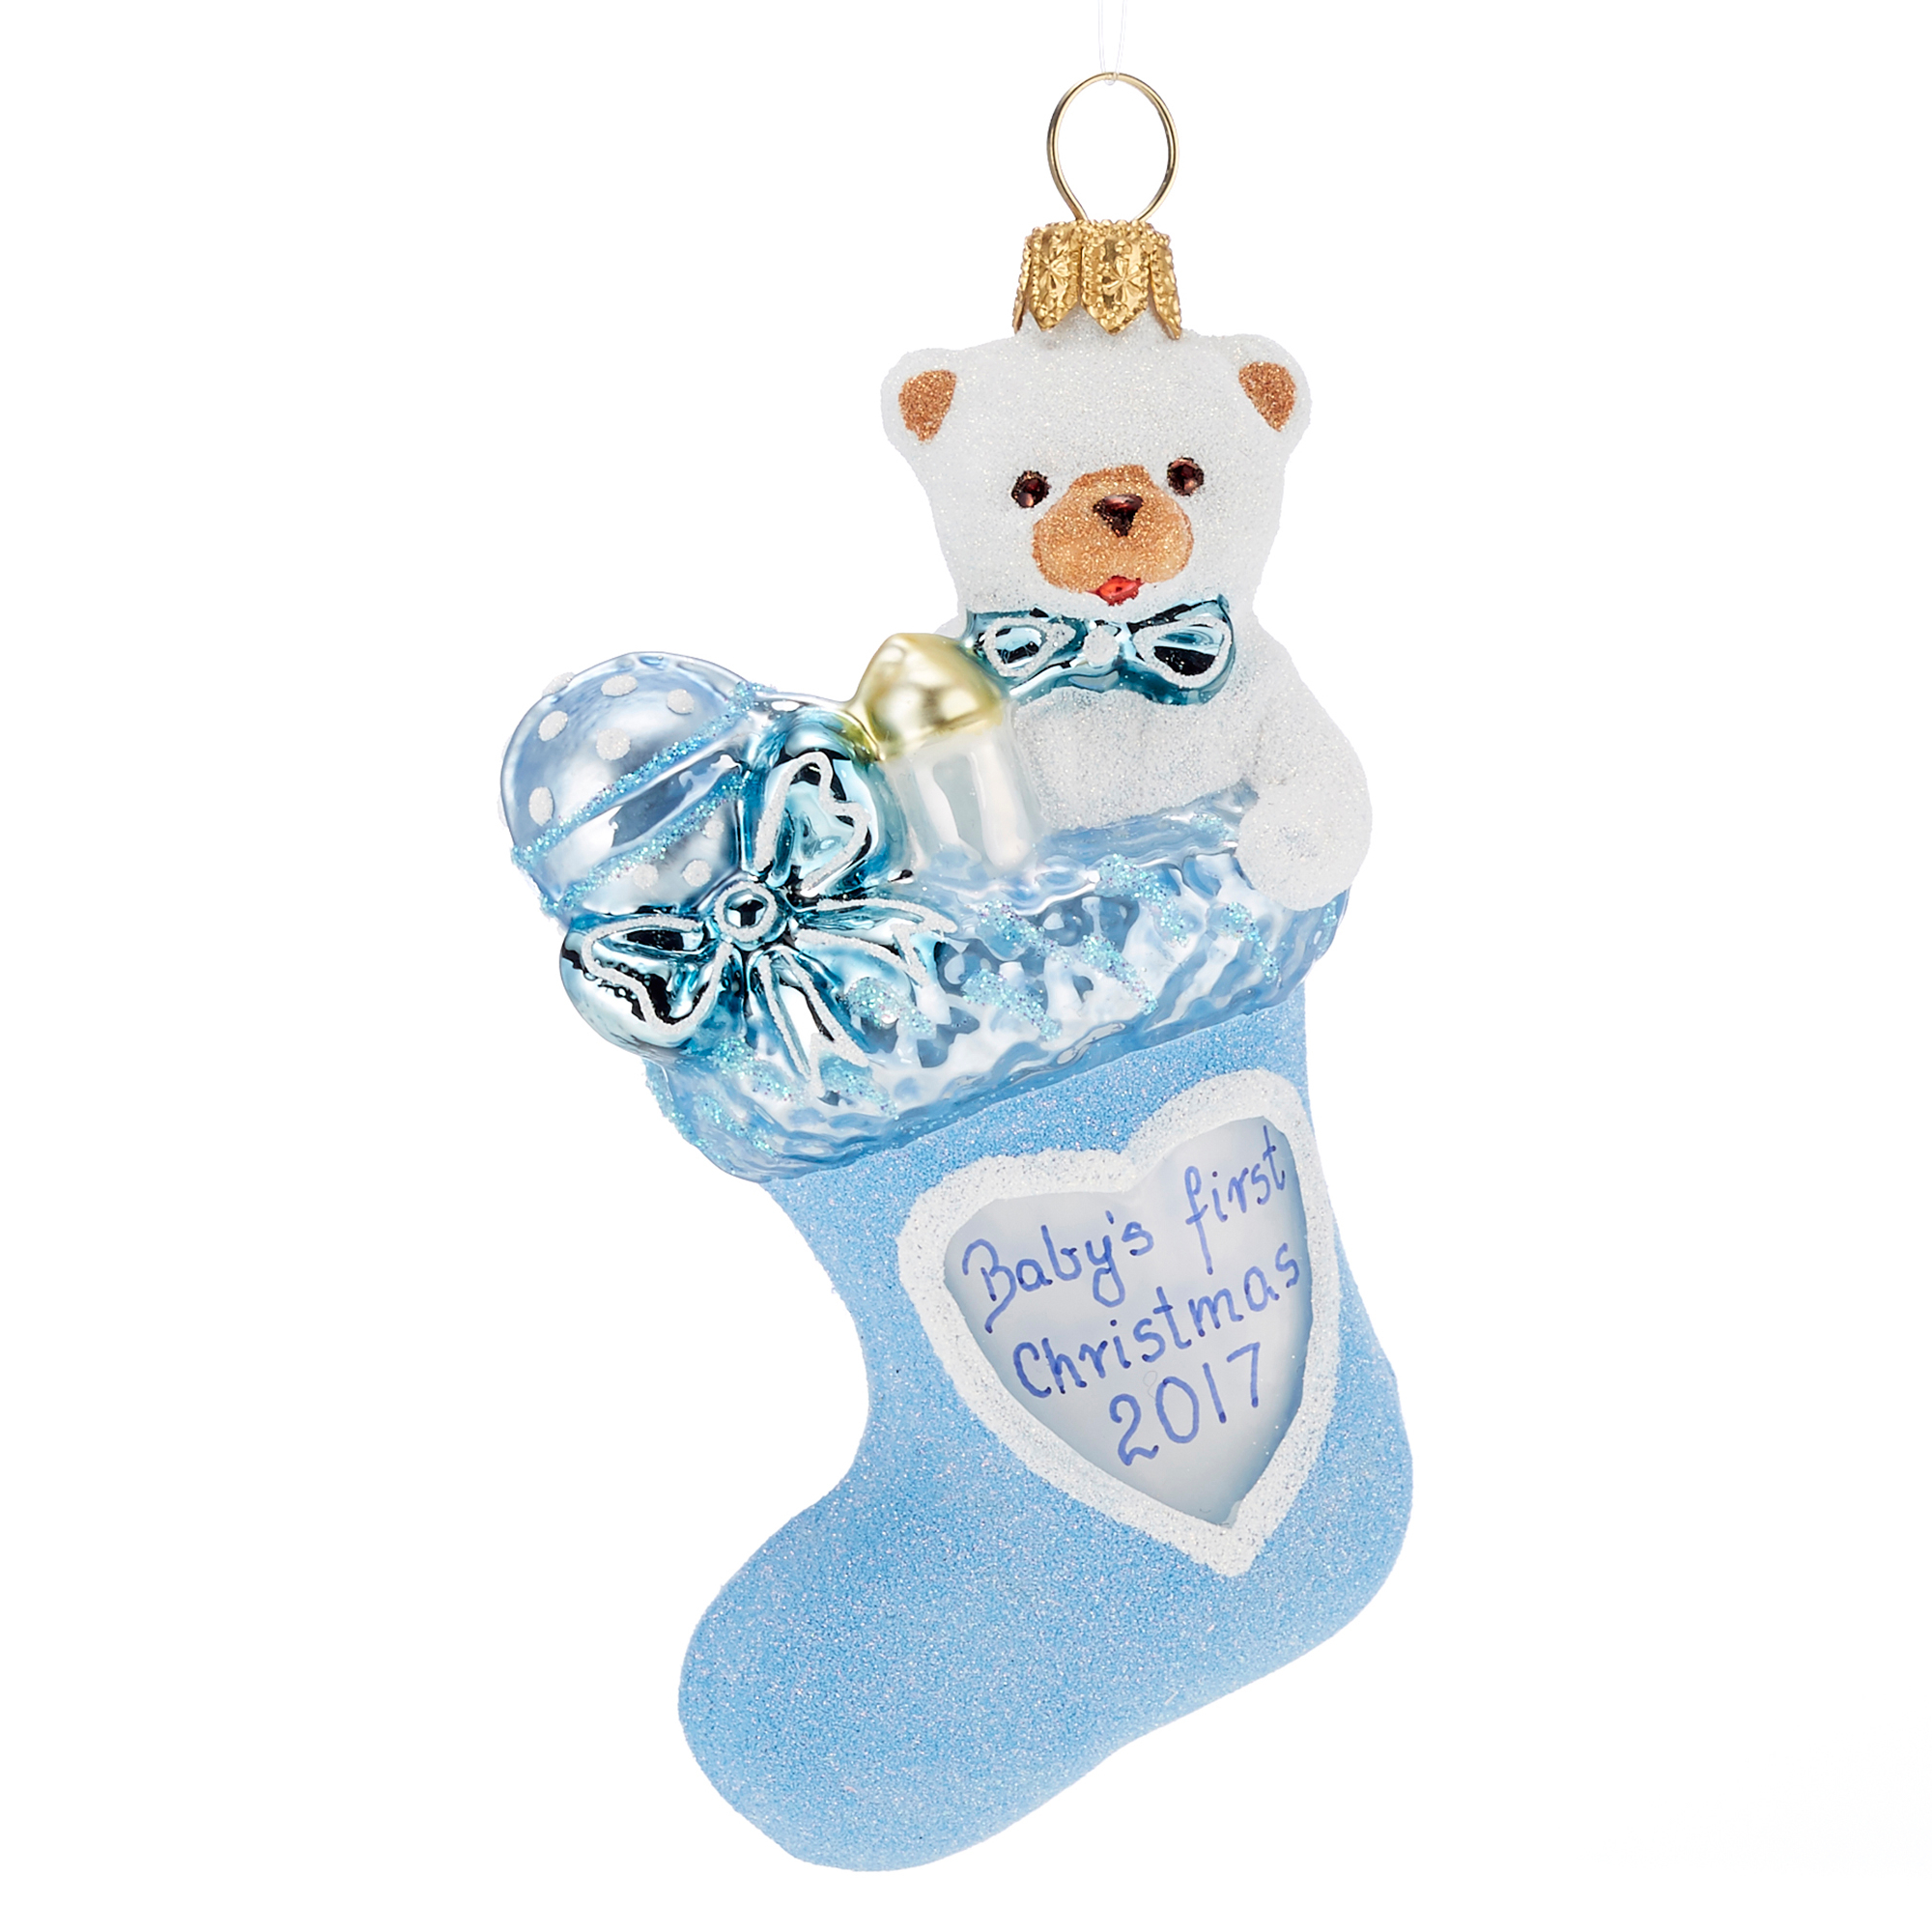 Baby's 1st Christmas Stocking Christmas Ornament, Blue